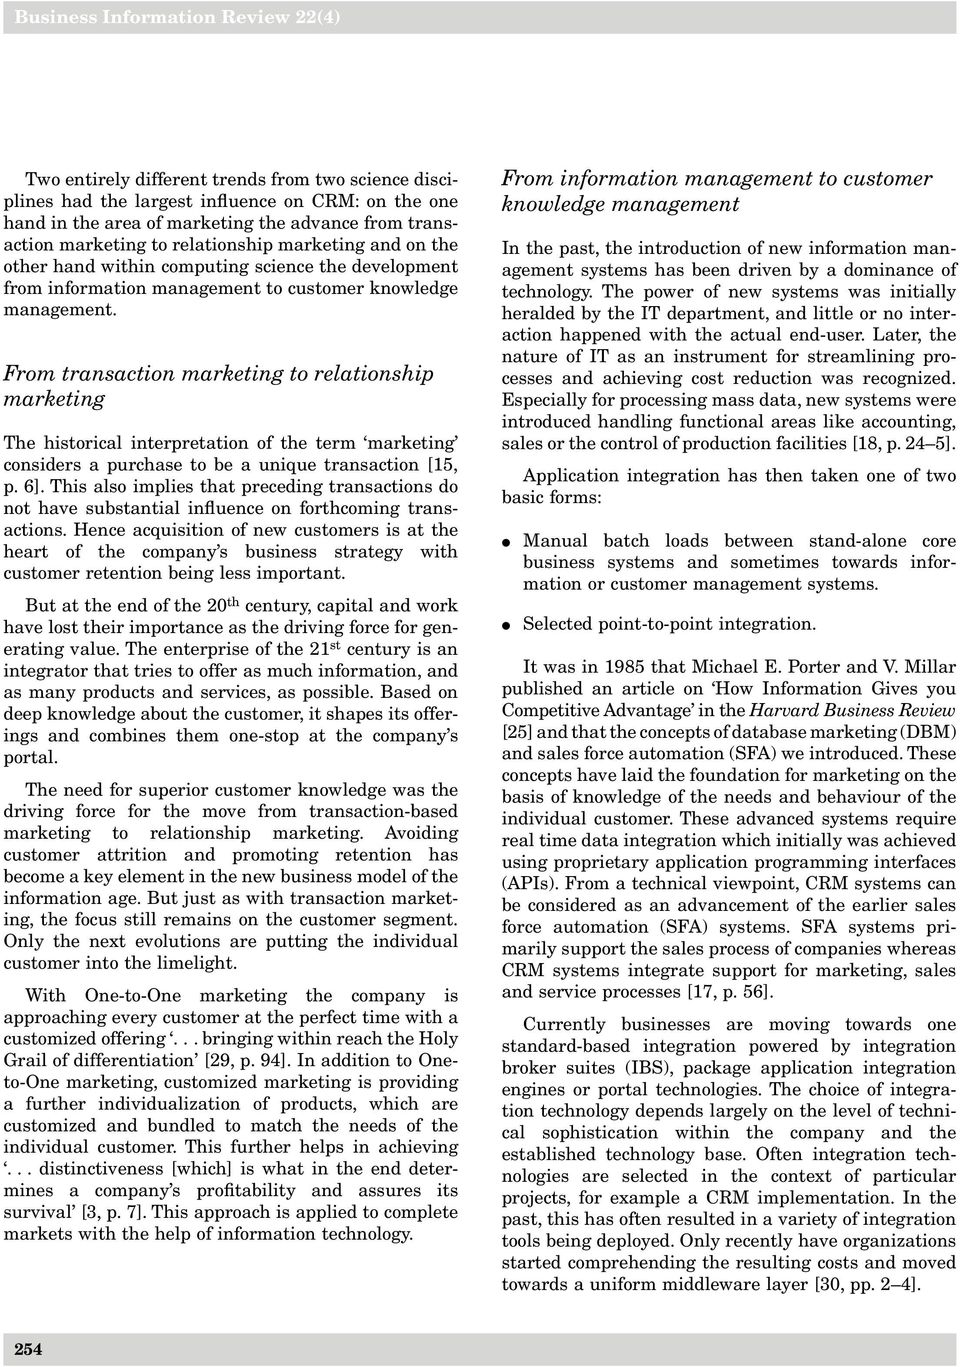 From transaction marketing to relationship marketing The historical interpretation of the term marketing considers a purchase to be a unique transaction [15, p. 6].